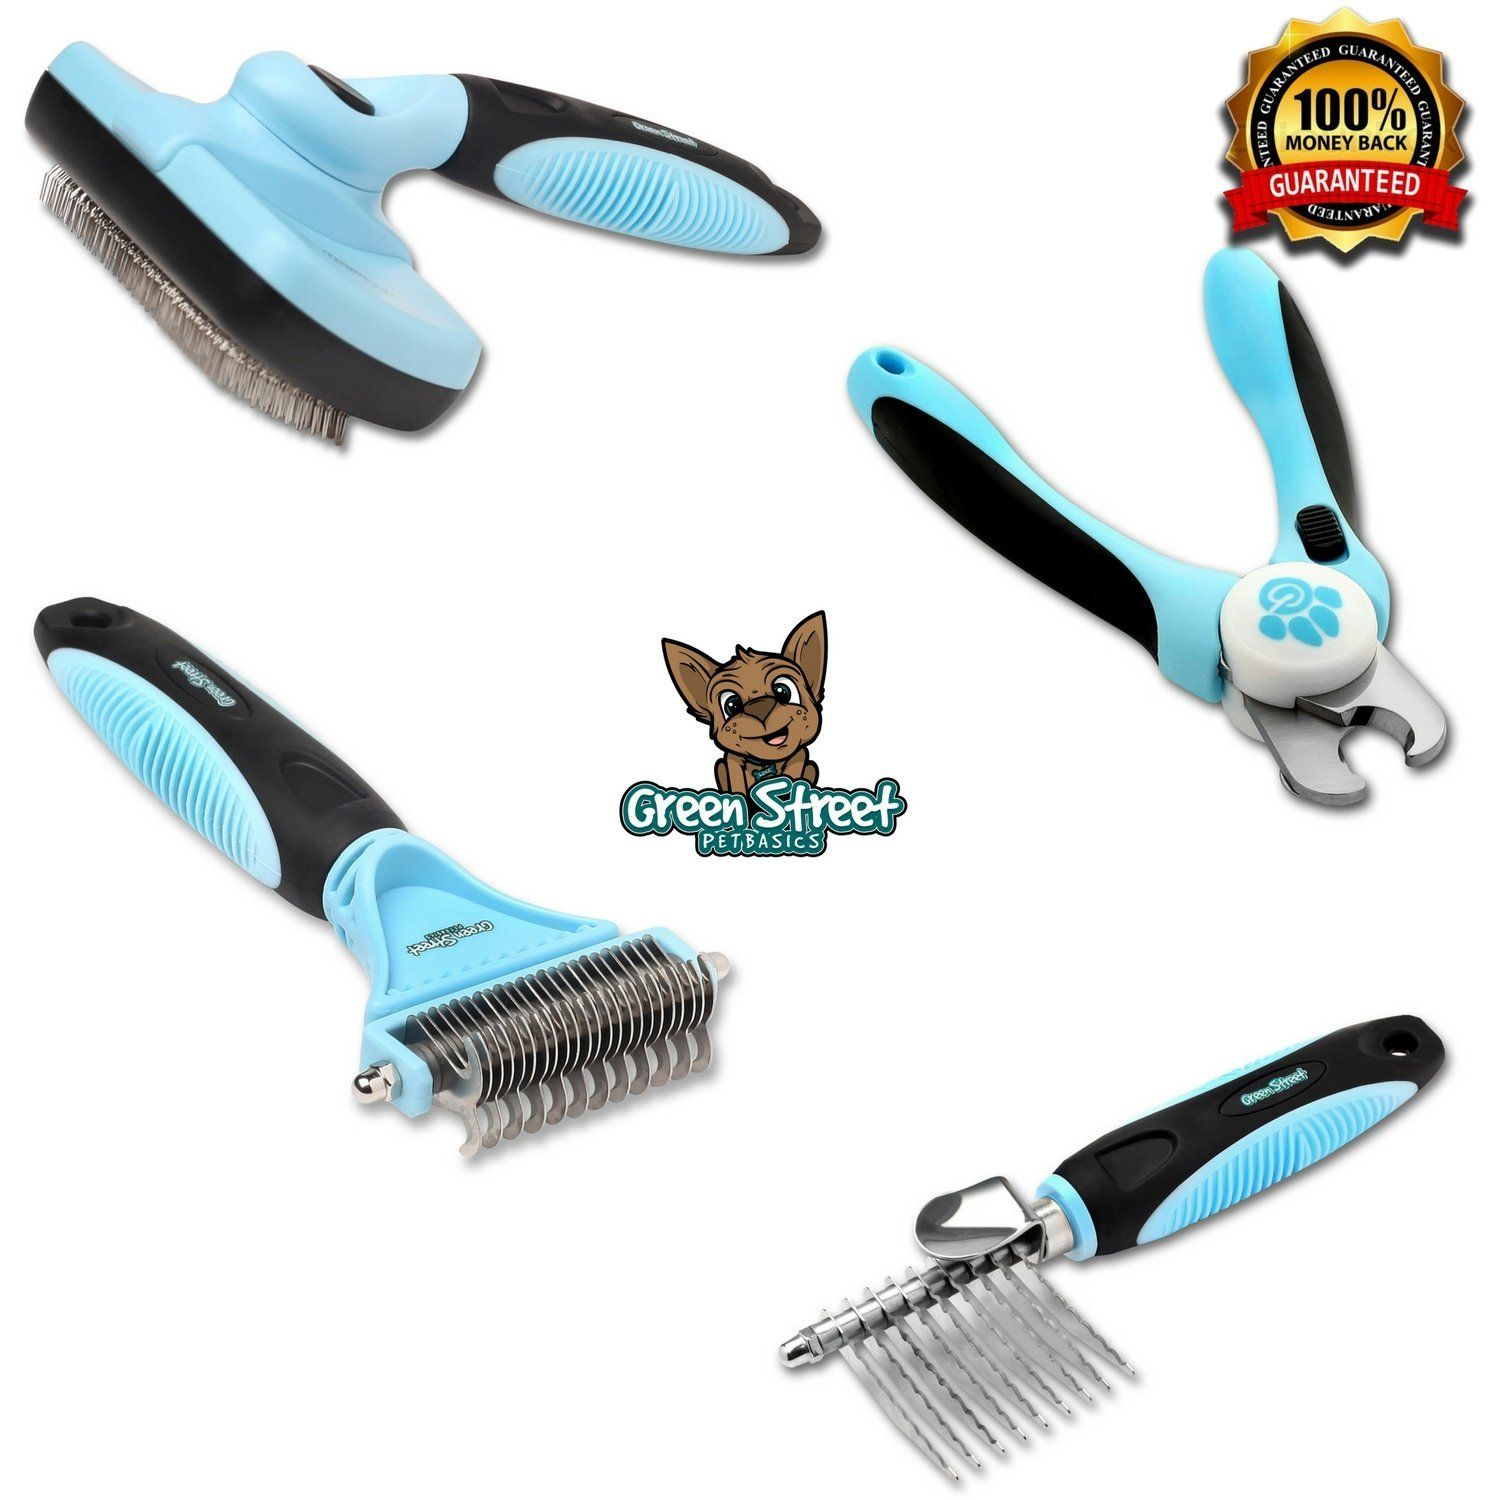 Professional Cat Grooming Kit With Nail Clippers Slicker Brush Dematting Comb And Dematting Tool For At Home Groomin Cat Grooming Pet Grooming Dog Grooming